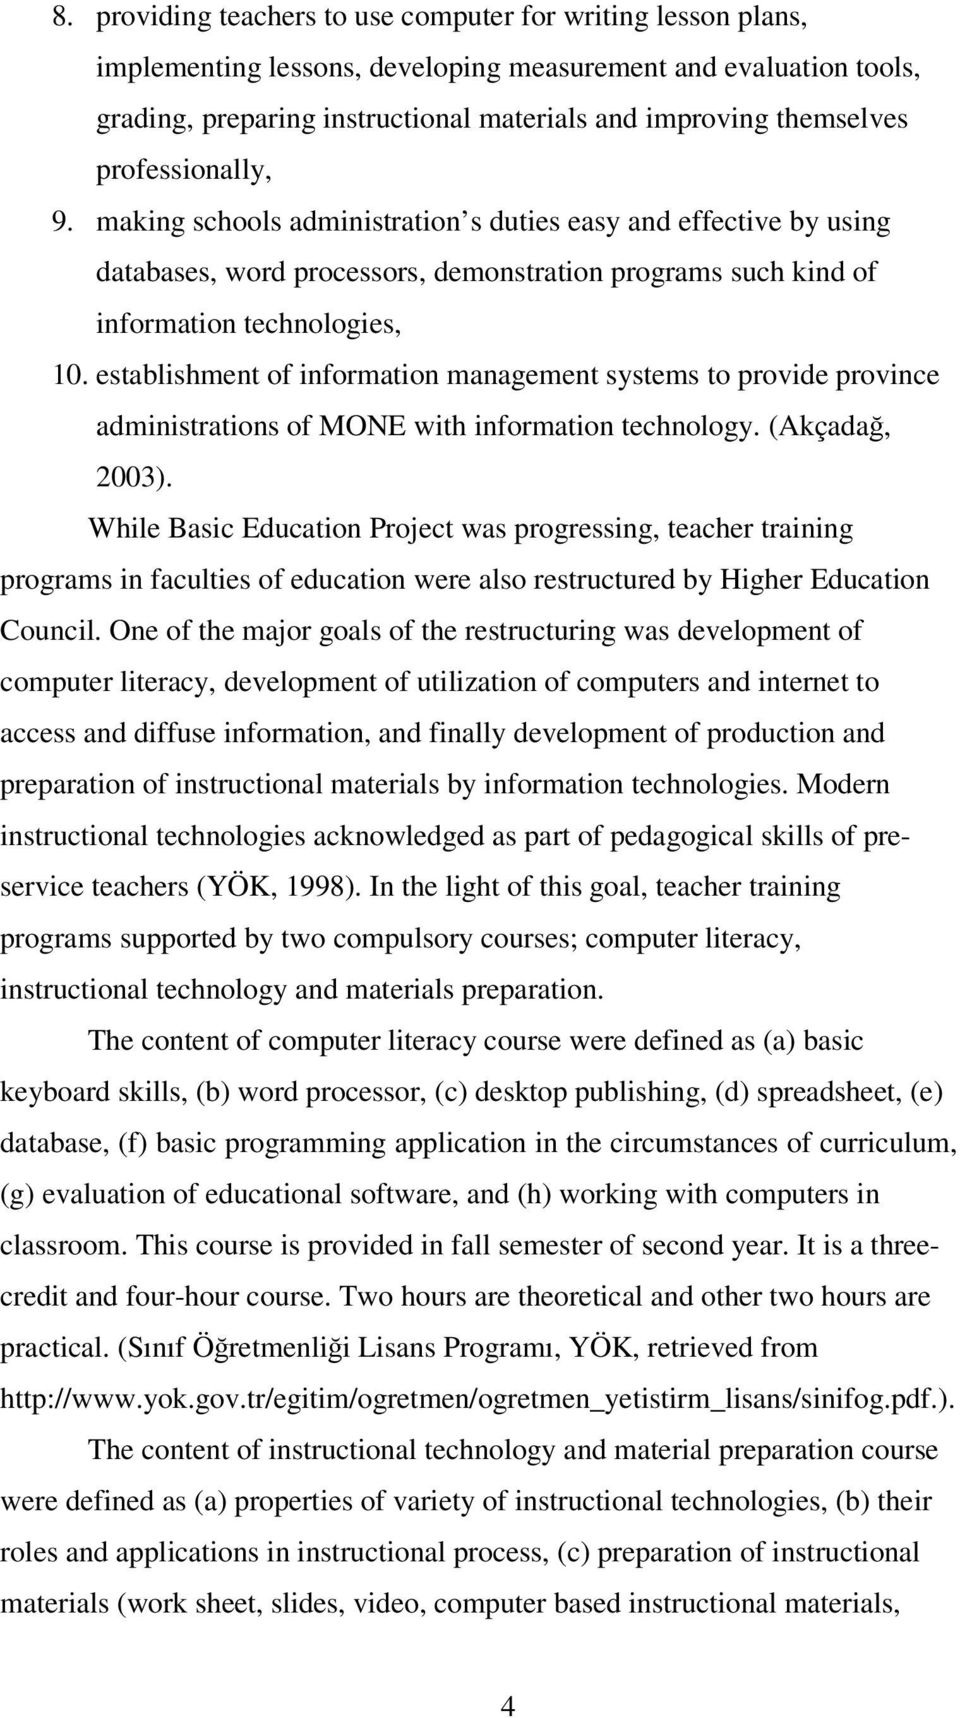 establishment of information management systems to provide province administrations of MONE with information technology. (Akçada, 2003).